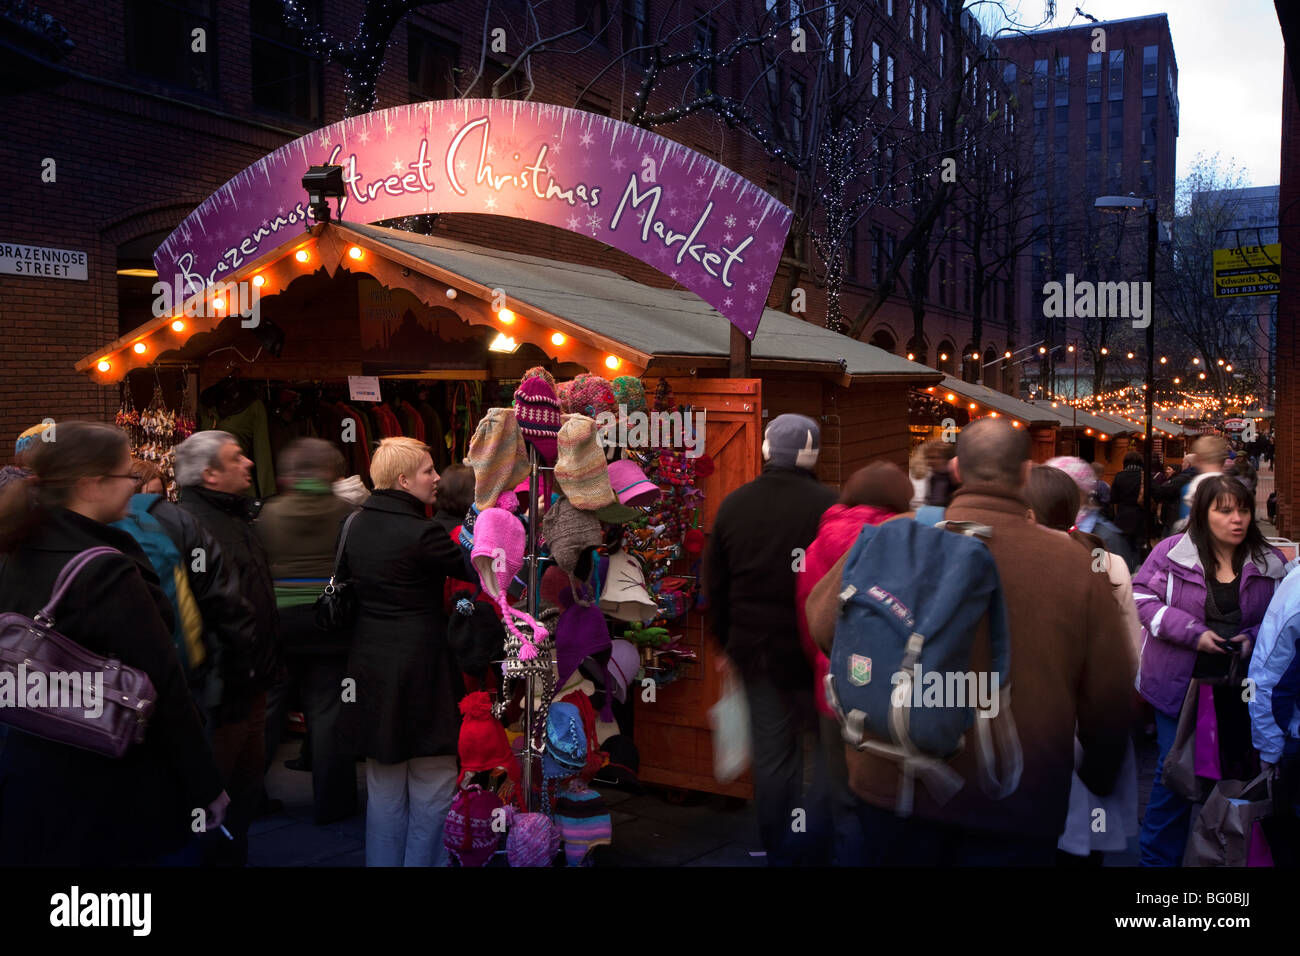 UK, England, Manchester, Albert Square, Brazennose Street, Christmas Market filled with crowds of shoppers - Stock Image